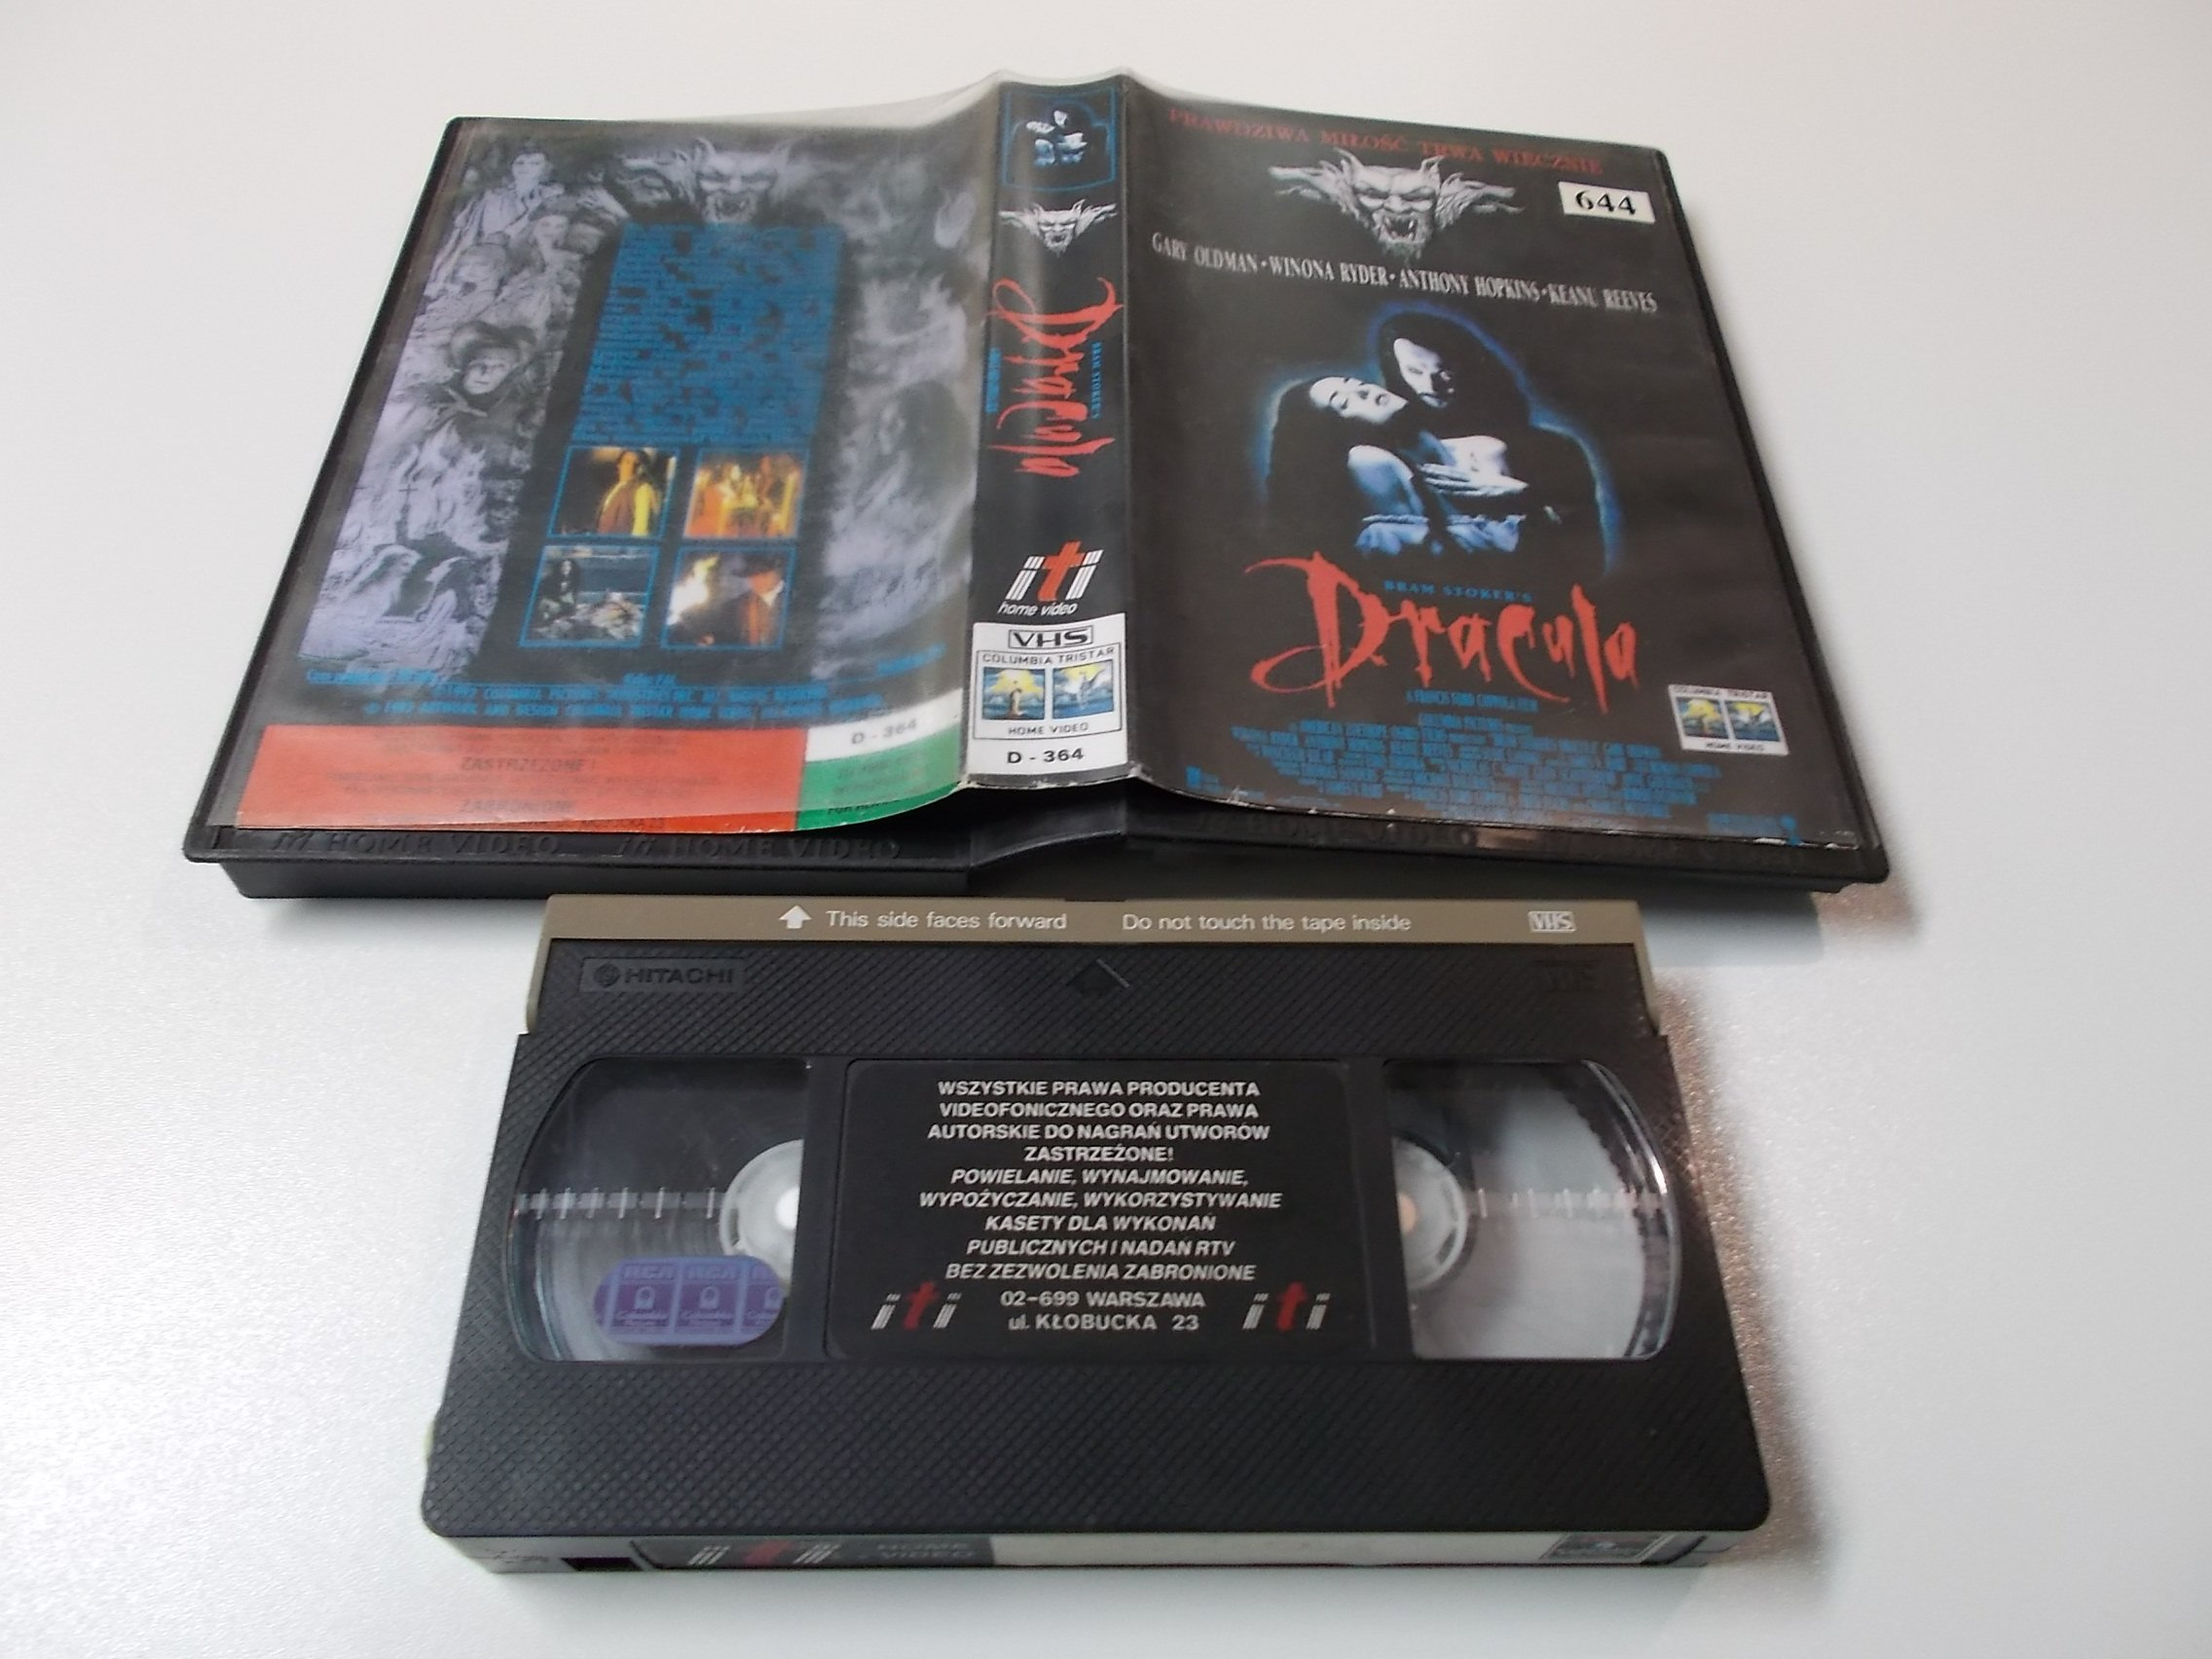 DRACULA - kaseta Video VHS - 1415 Sklep